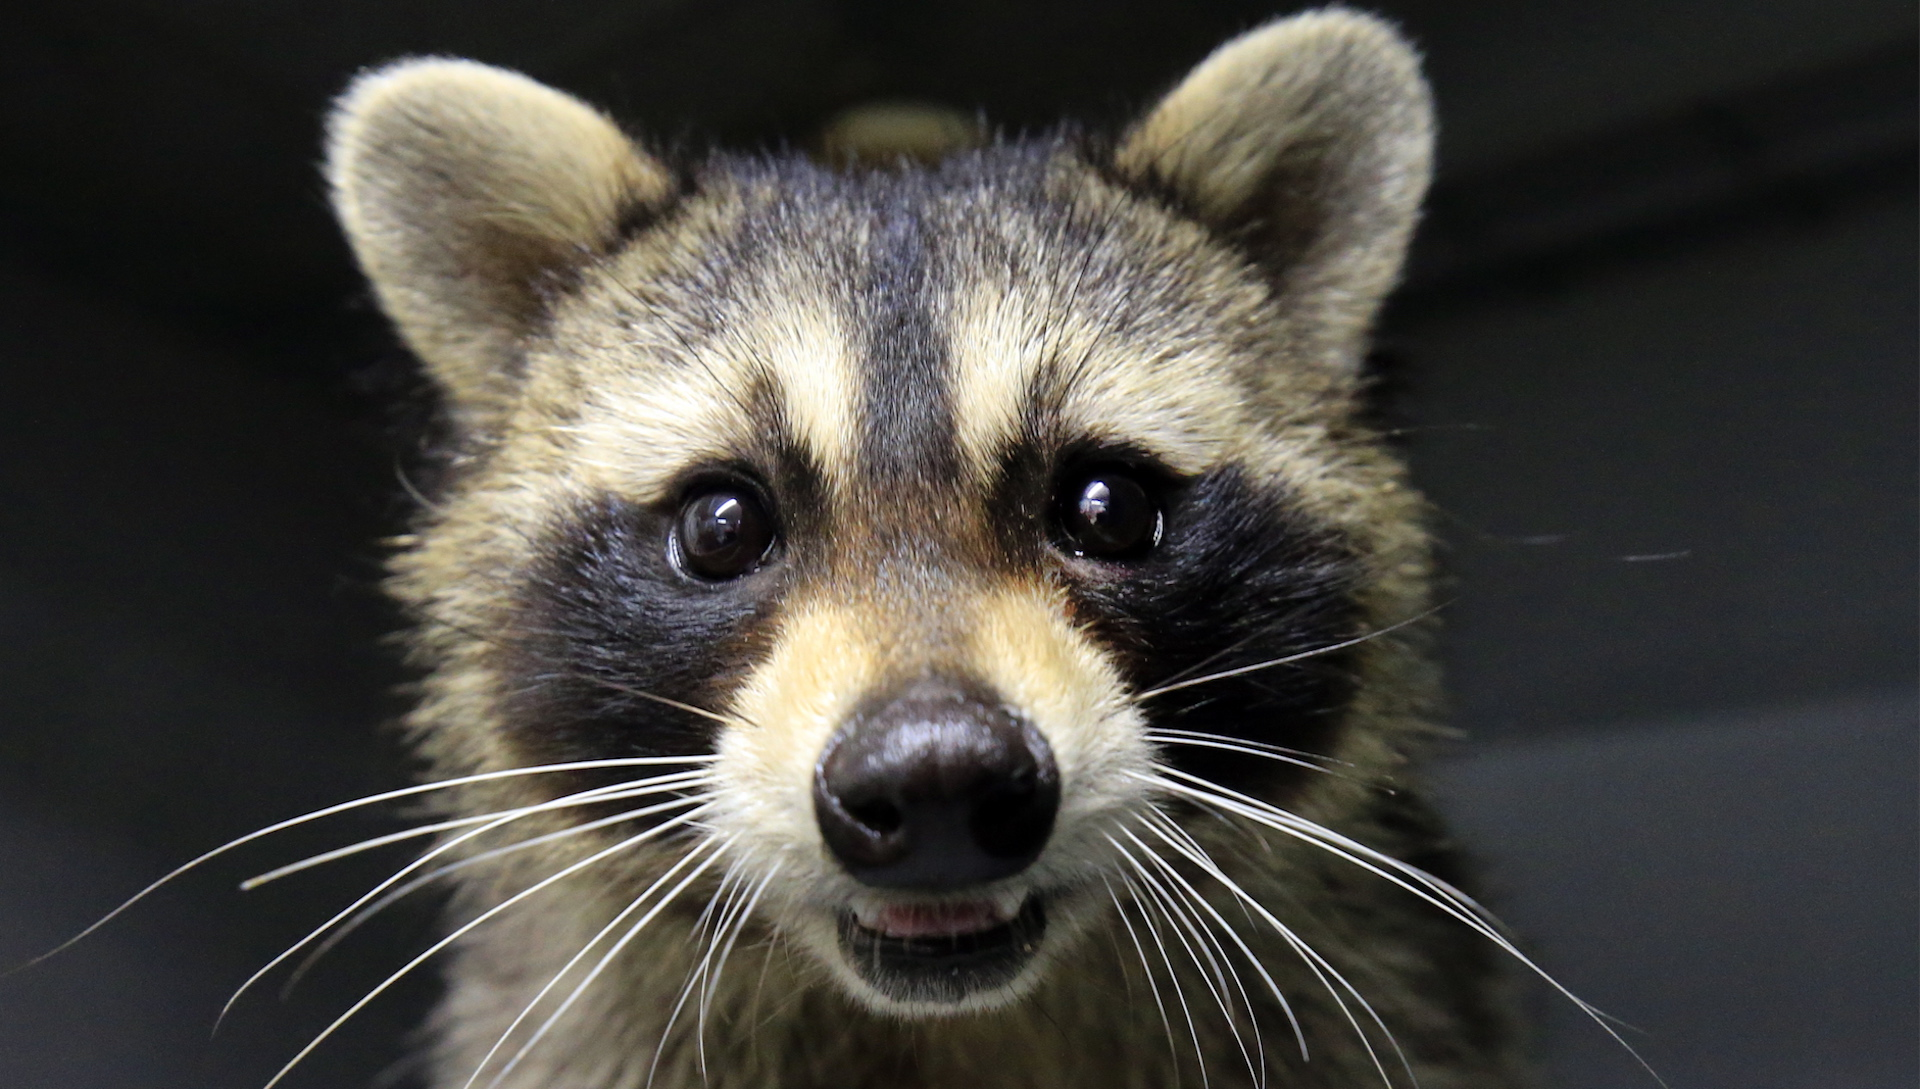 ve lil' raccoon climbs up tall building, jumps off, survives Raccoon Under Mobile Home on retirement home, websites for iowa modular home, sheetrock installation home,